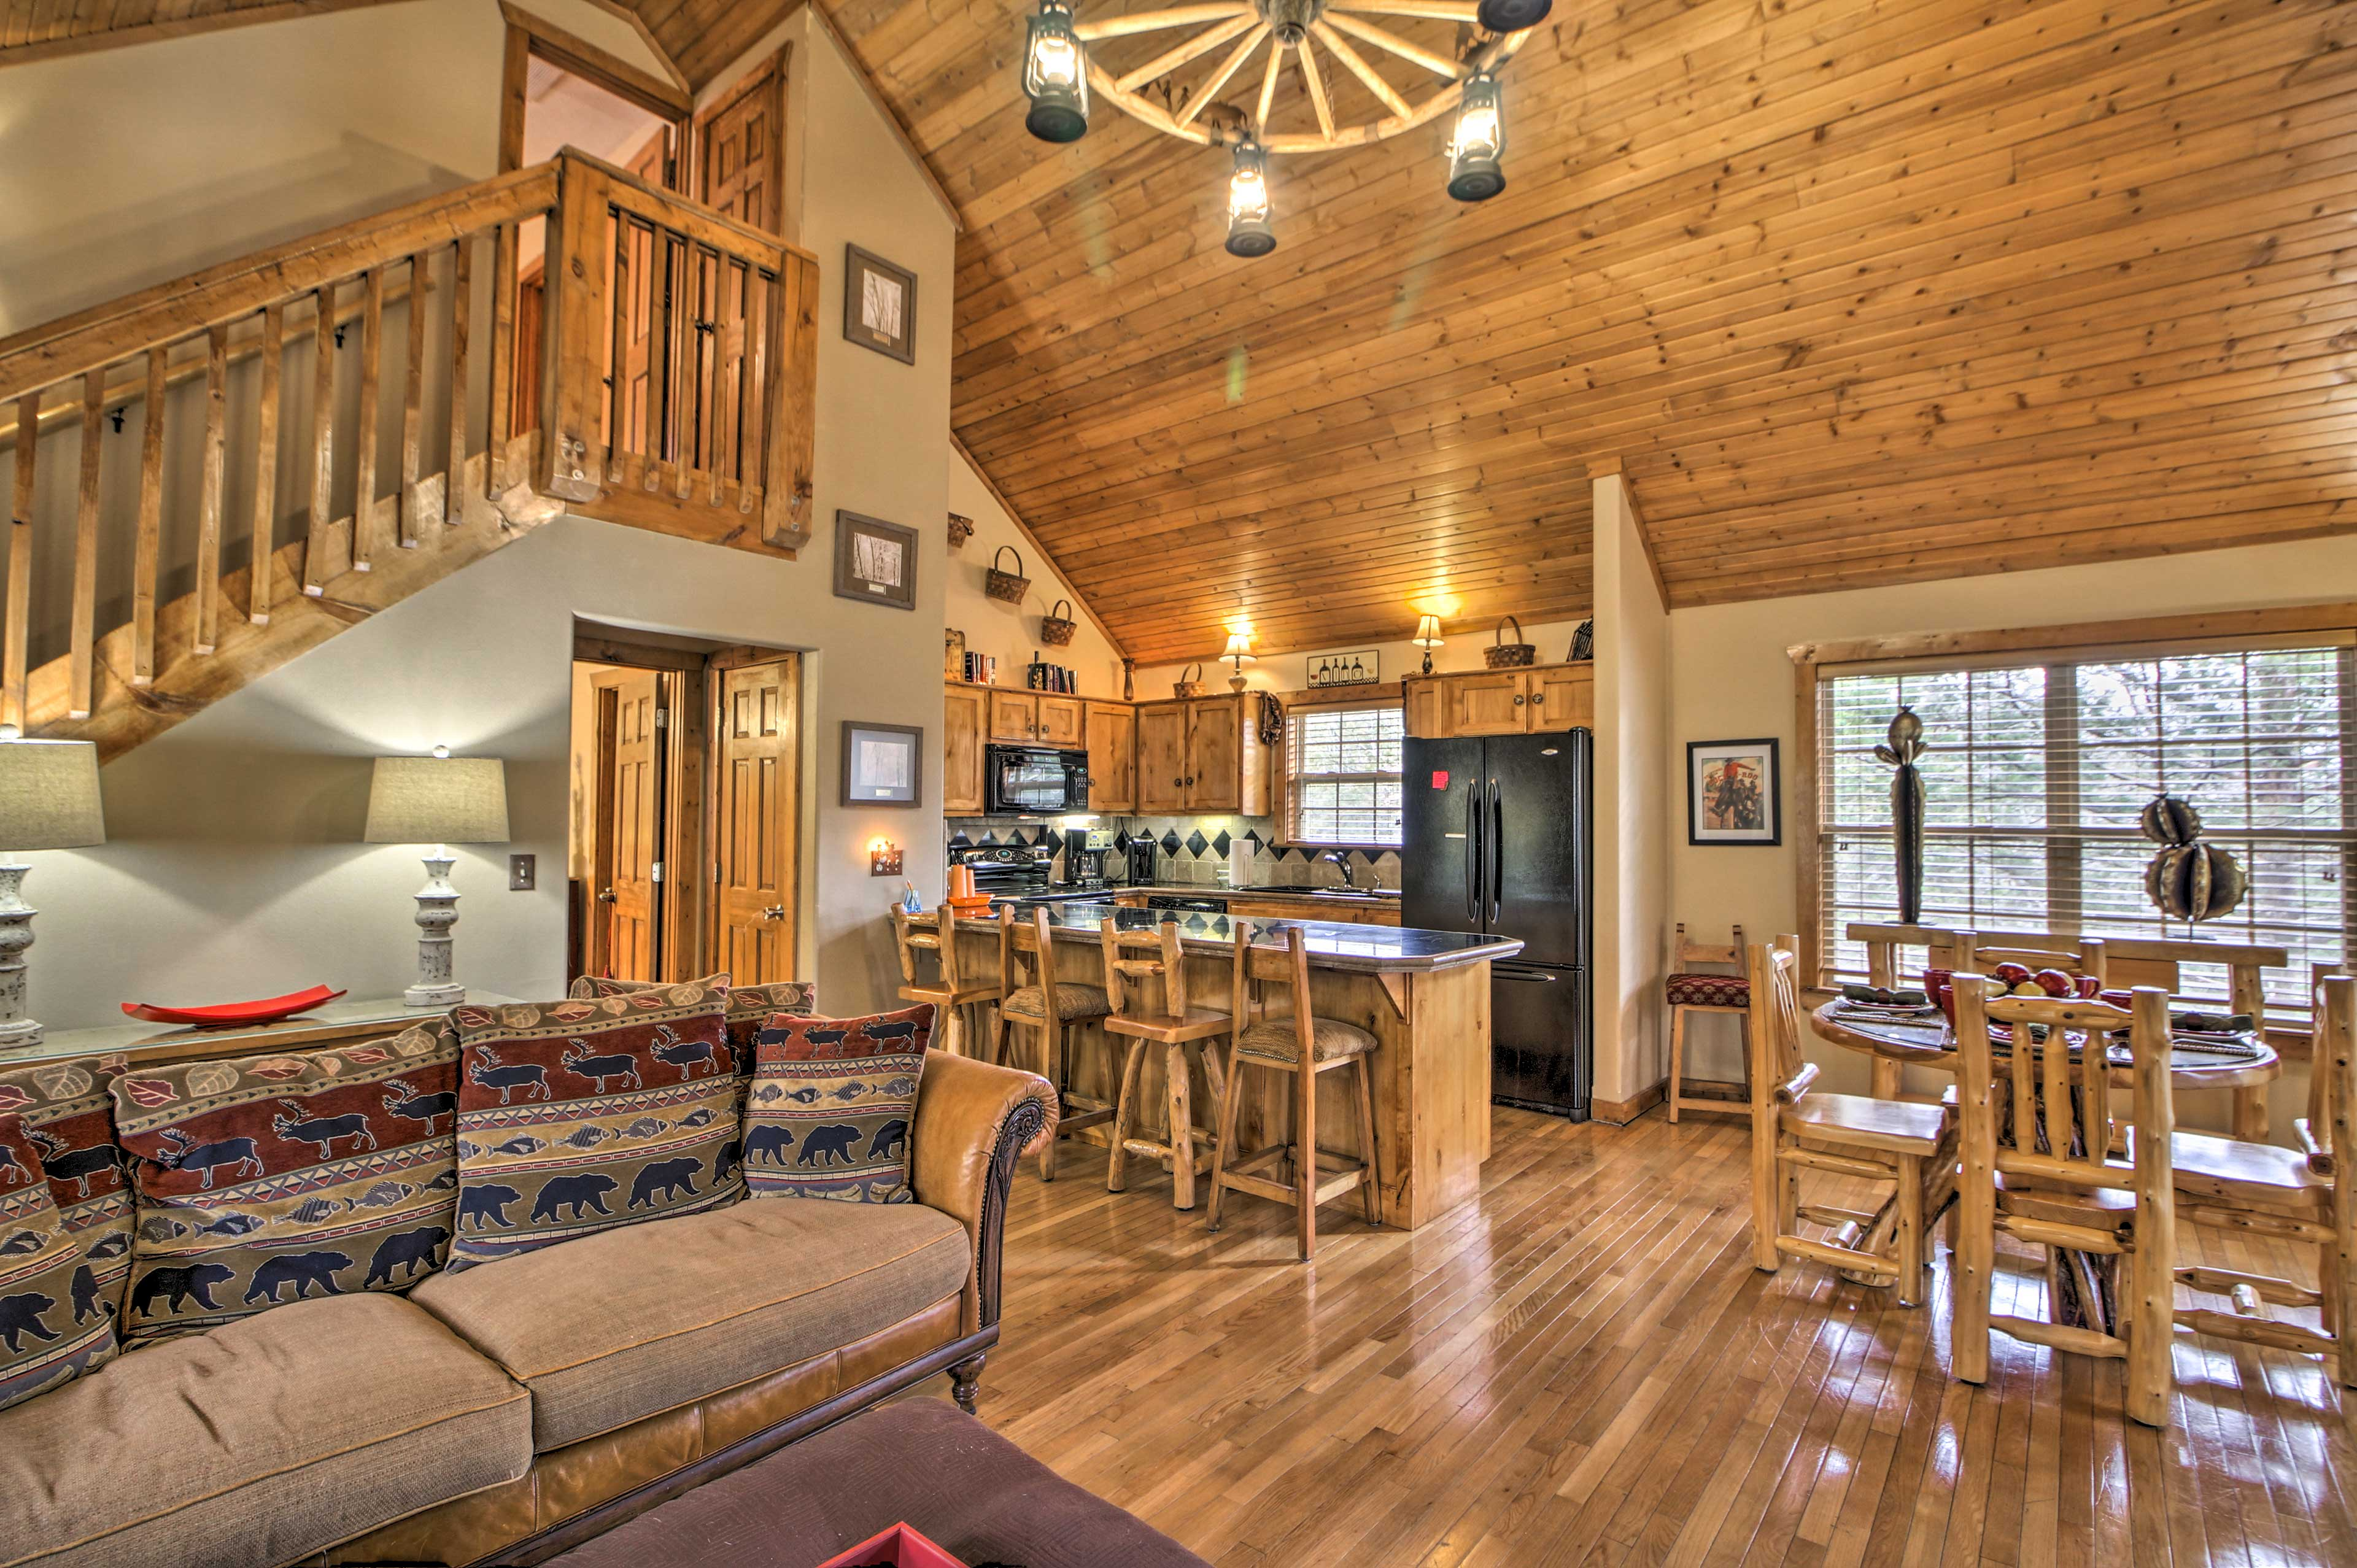 The open floor plan makes the home feel warm and inviting.